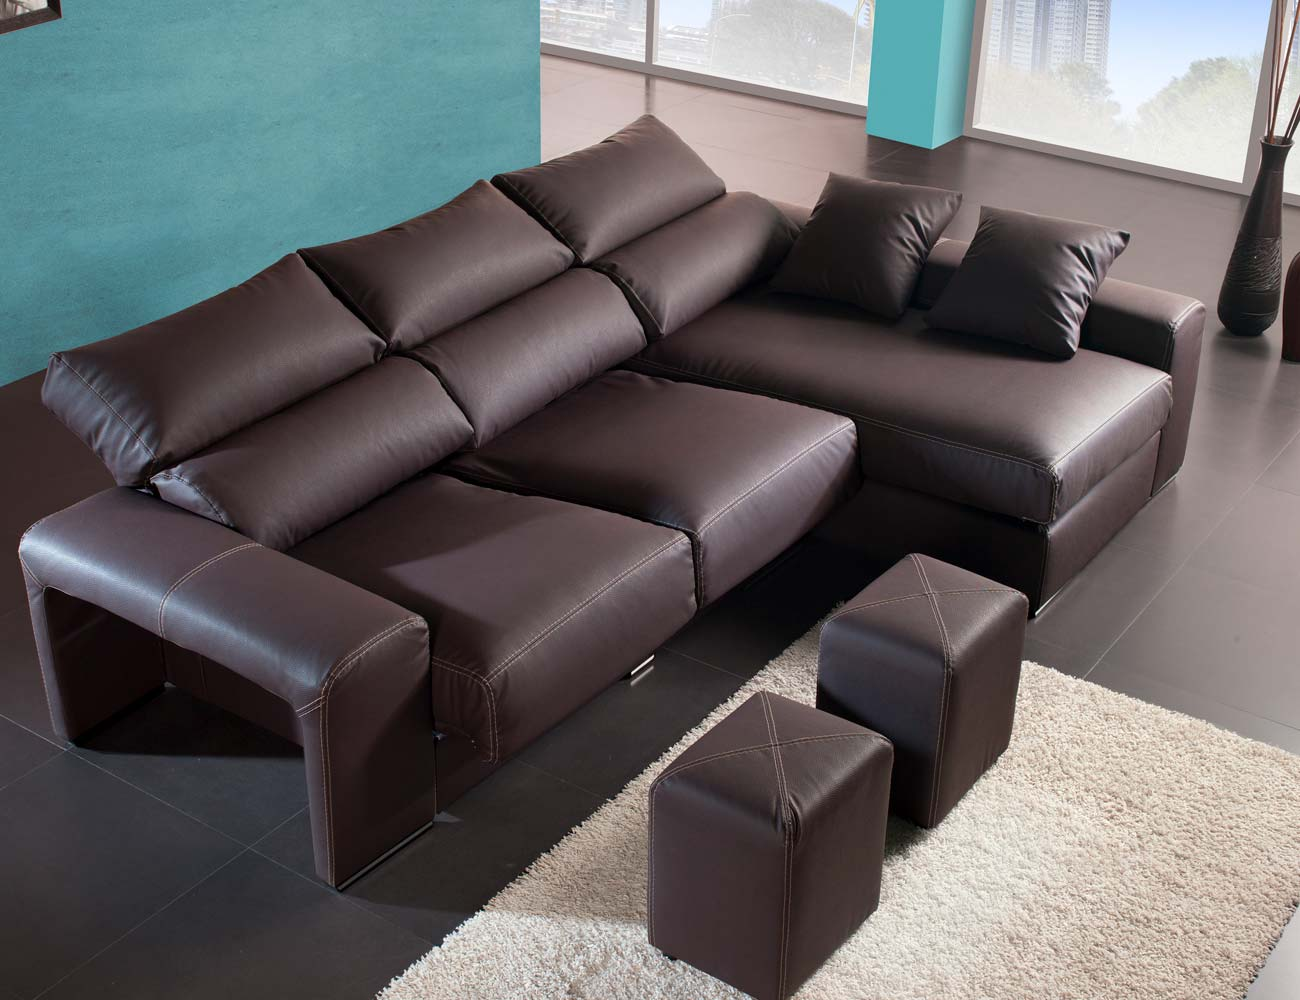 Sofa chaiselongue moderno polipiel chocolate poufs taburetes40